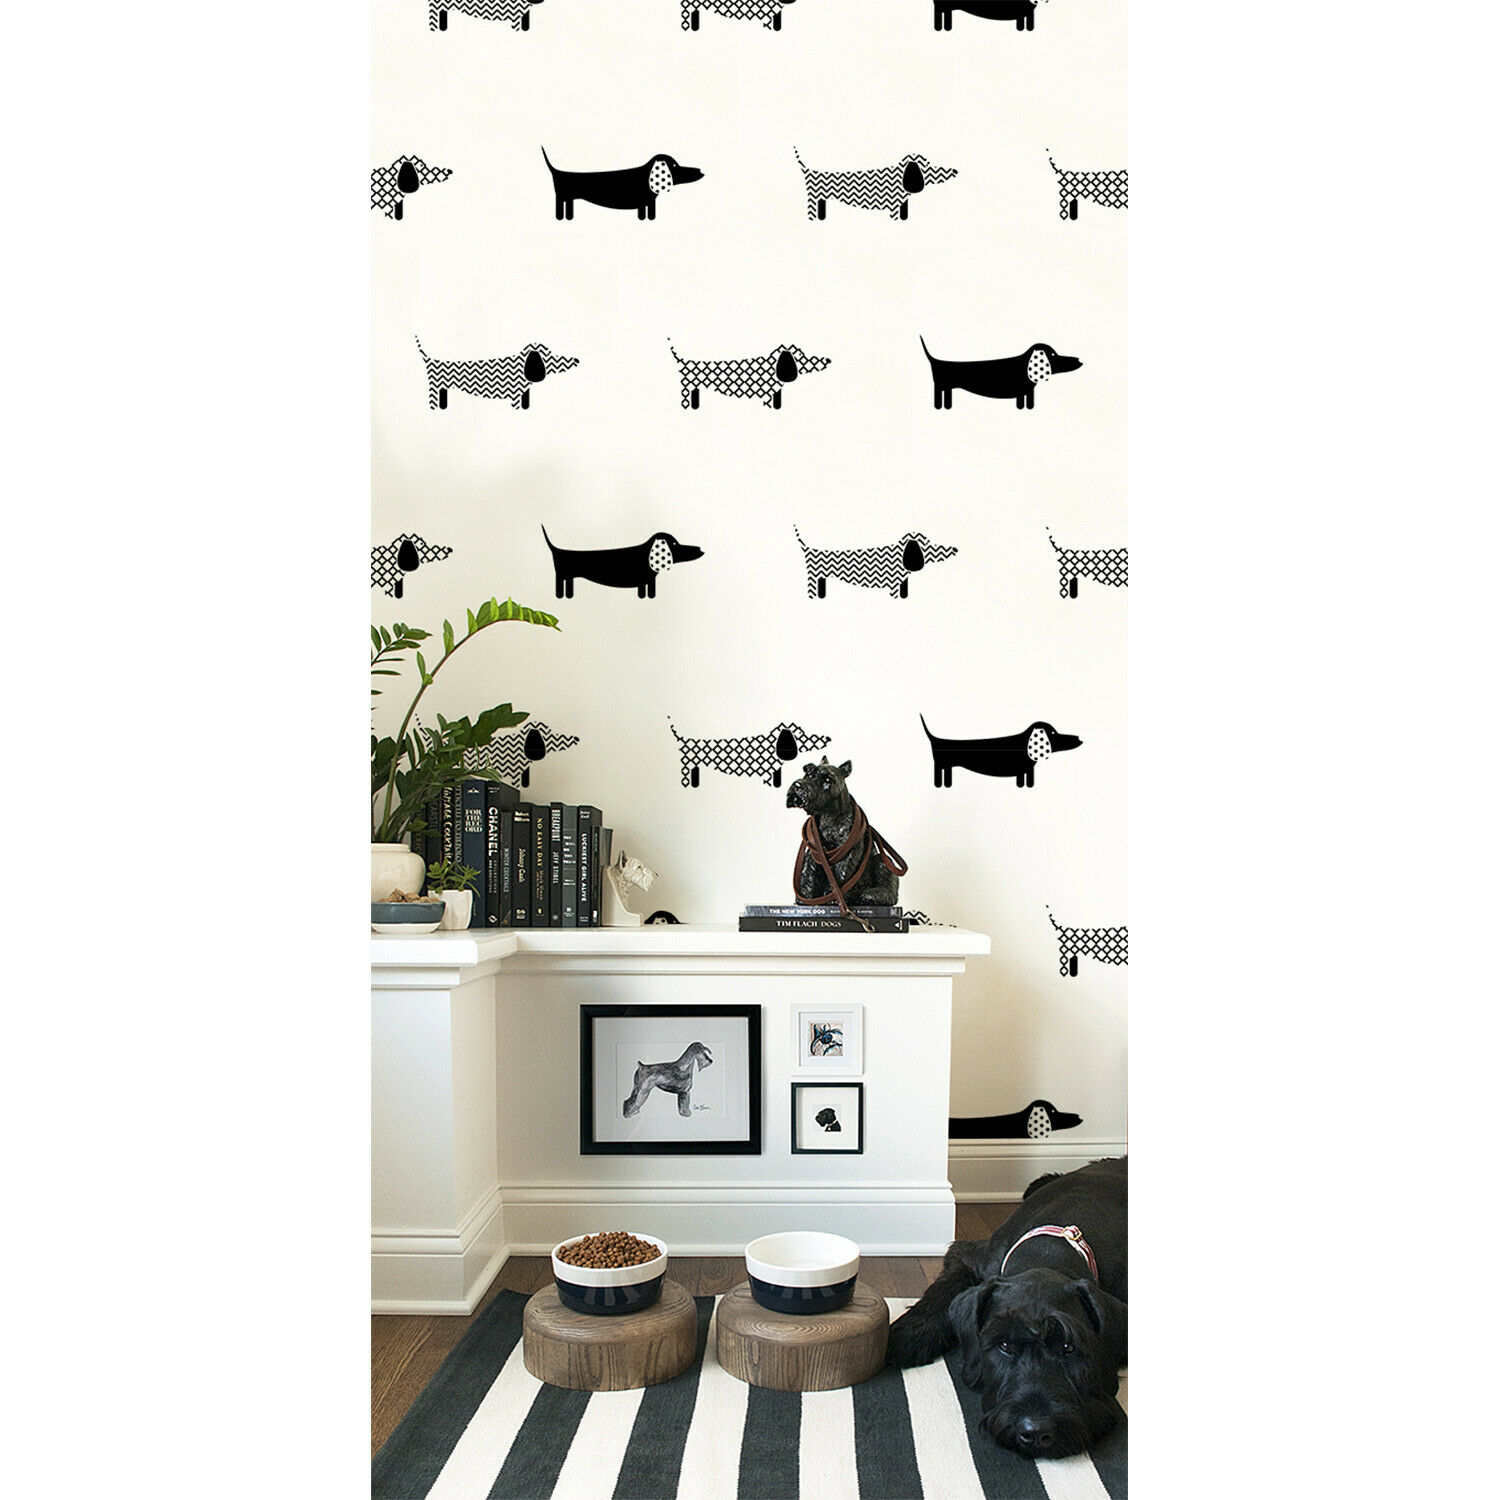 Dachshunds wall mural Animals Home decor Dogs Non-Woven wallpaper traditional